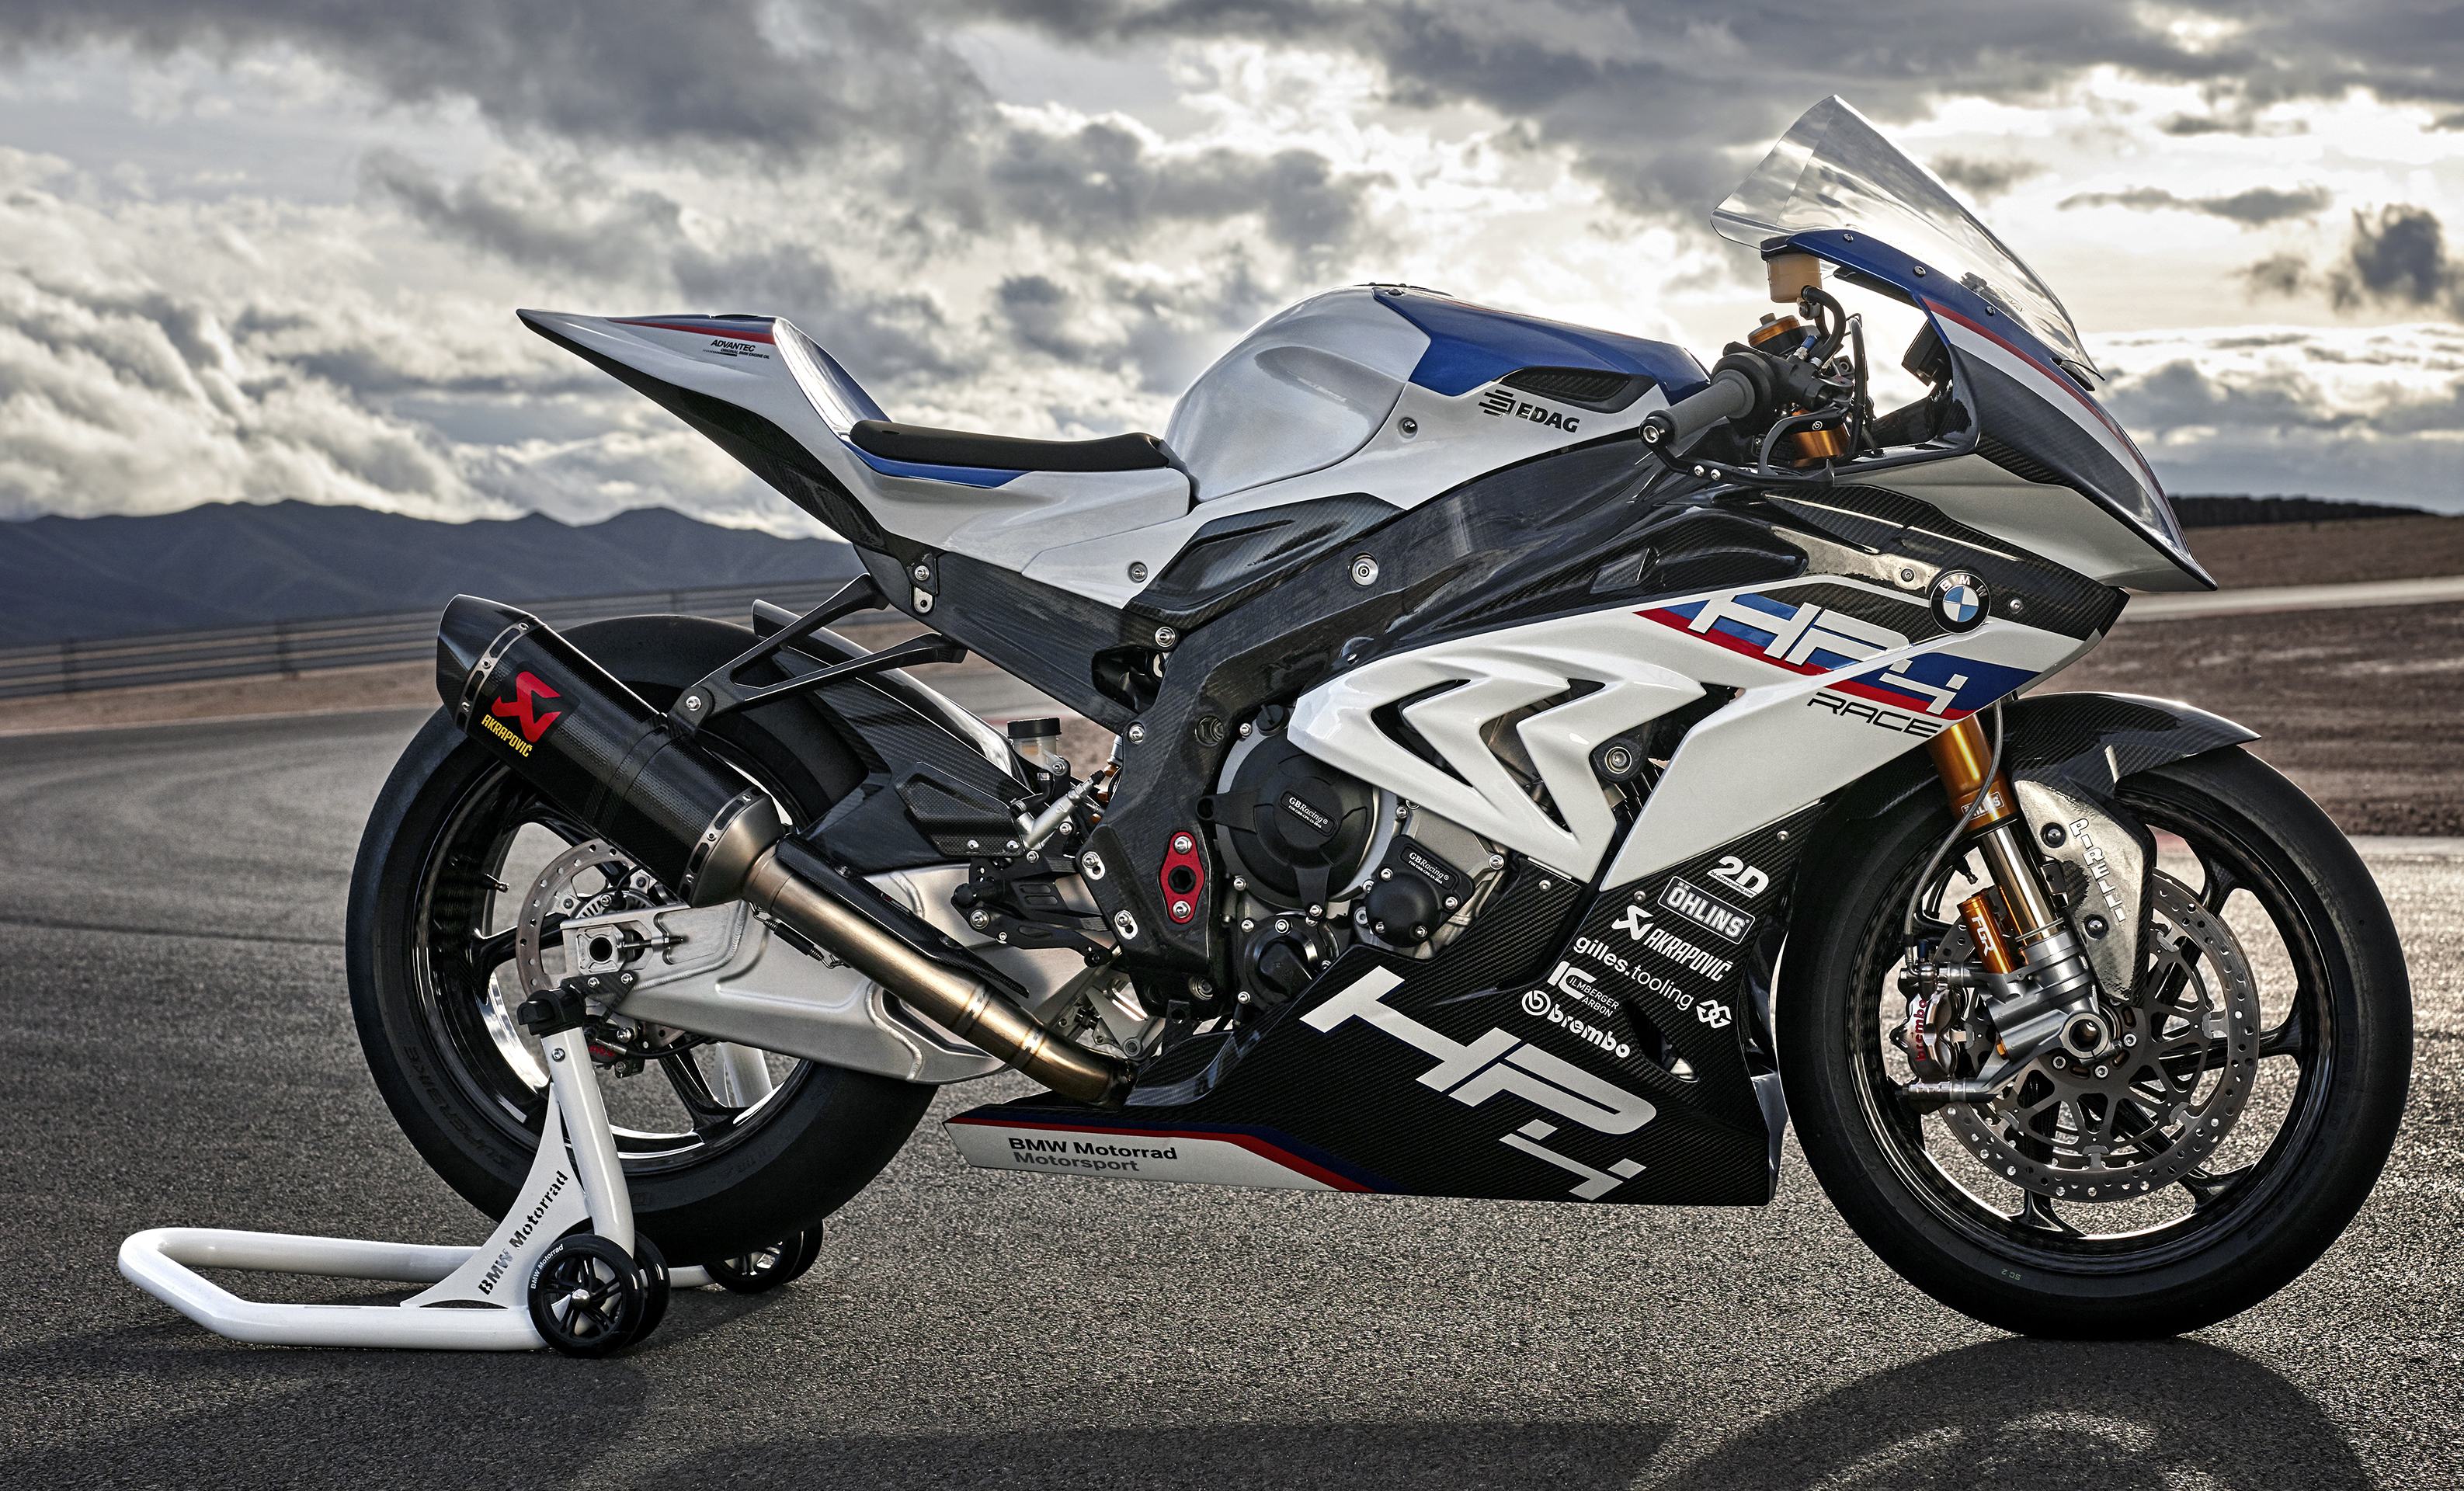 2017 BMW Motorrad HP4 Race racing motorcycle released ...